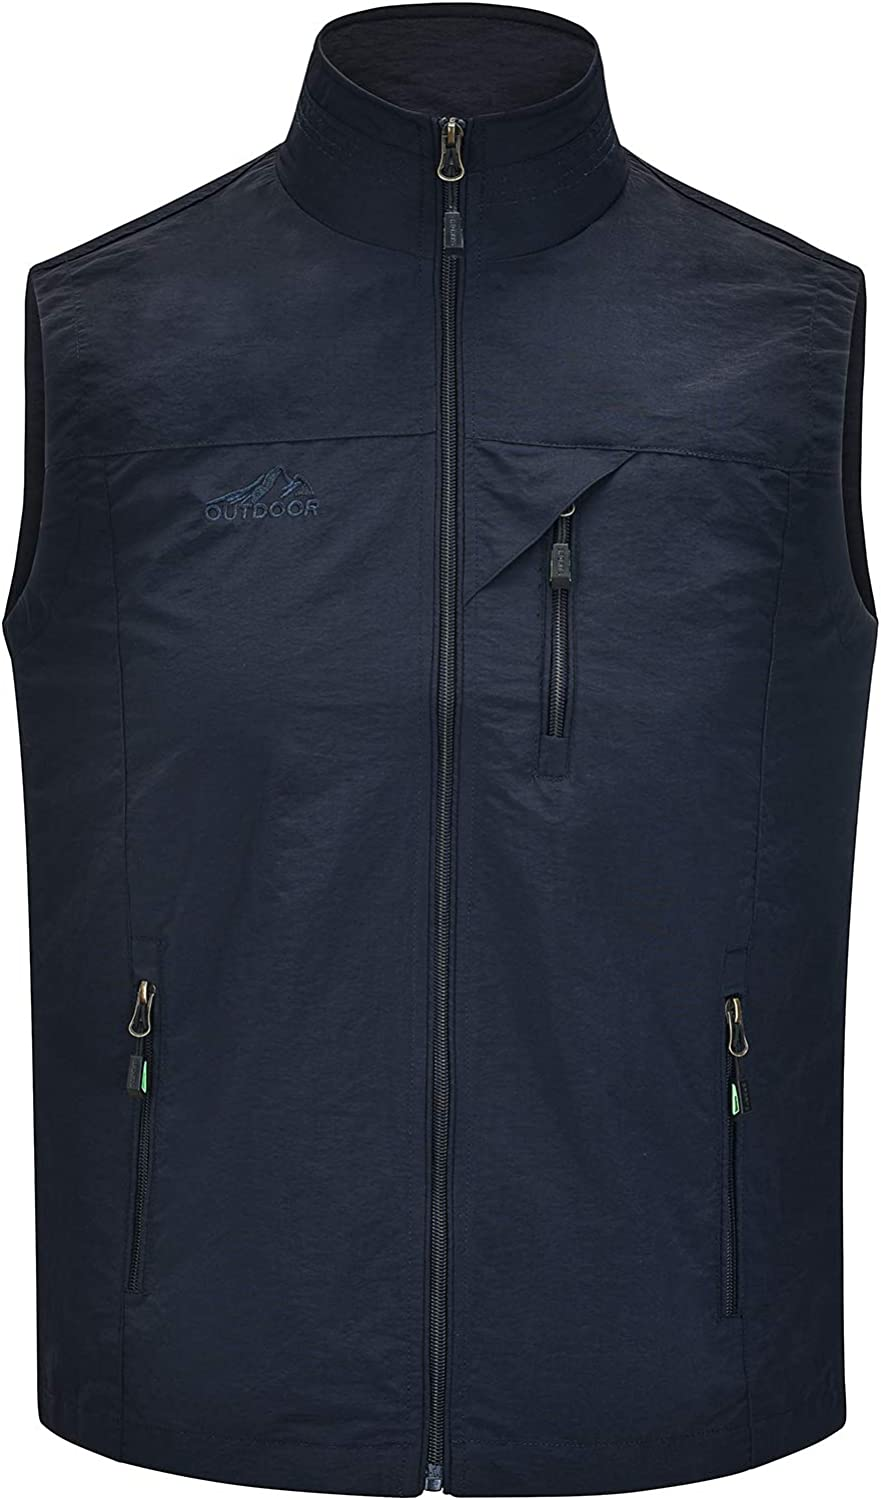 Spanye Men Lightweight Vest Outdoor Leisure Wi Pockets Max 72% OFF OFFicial shop with